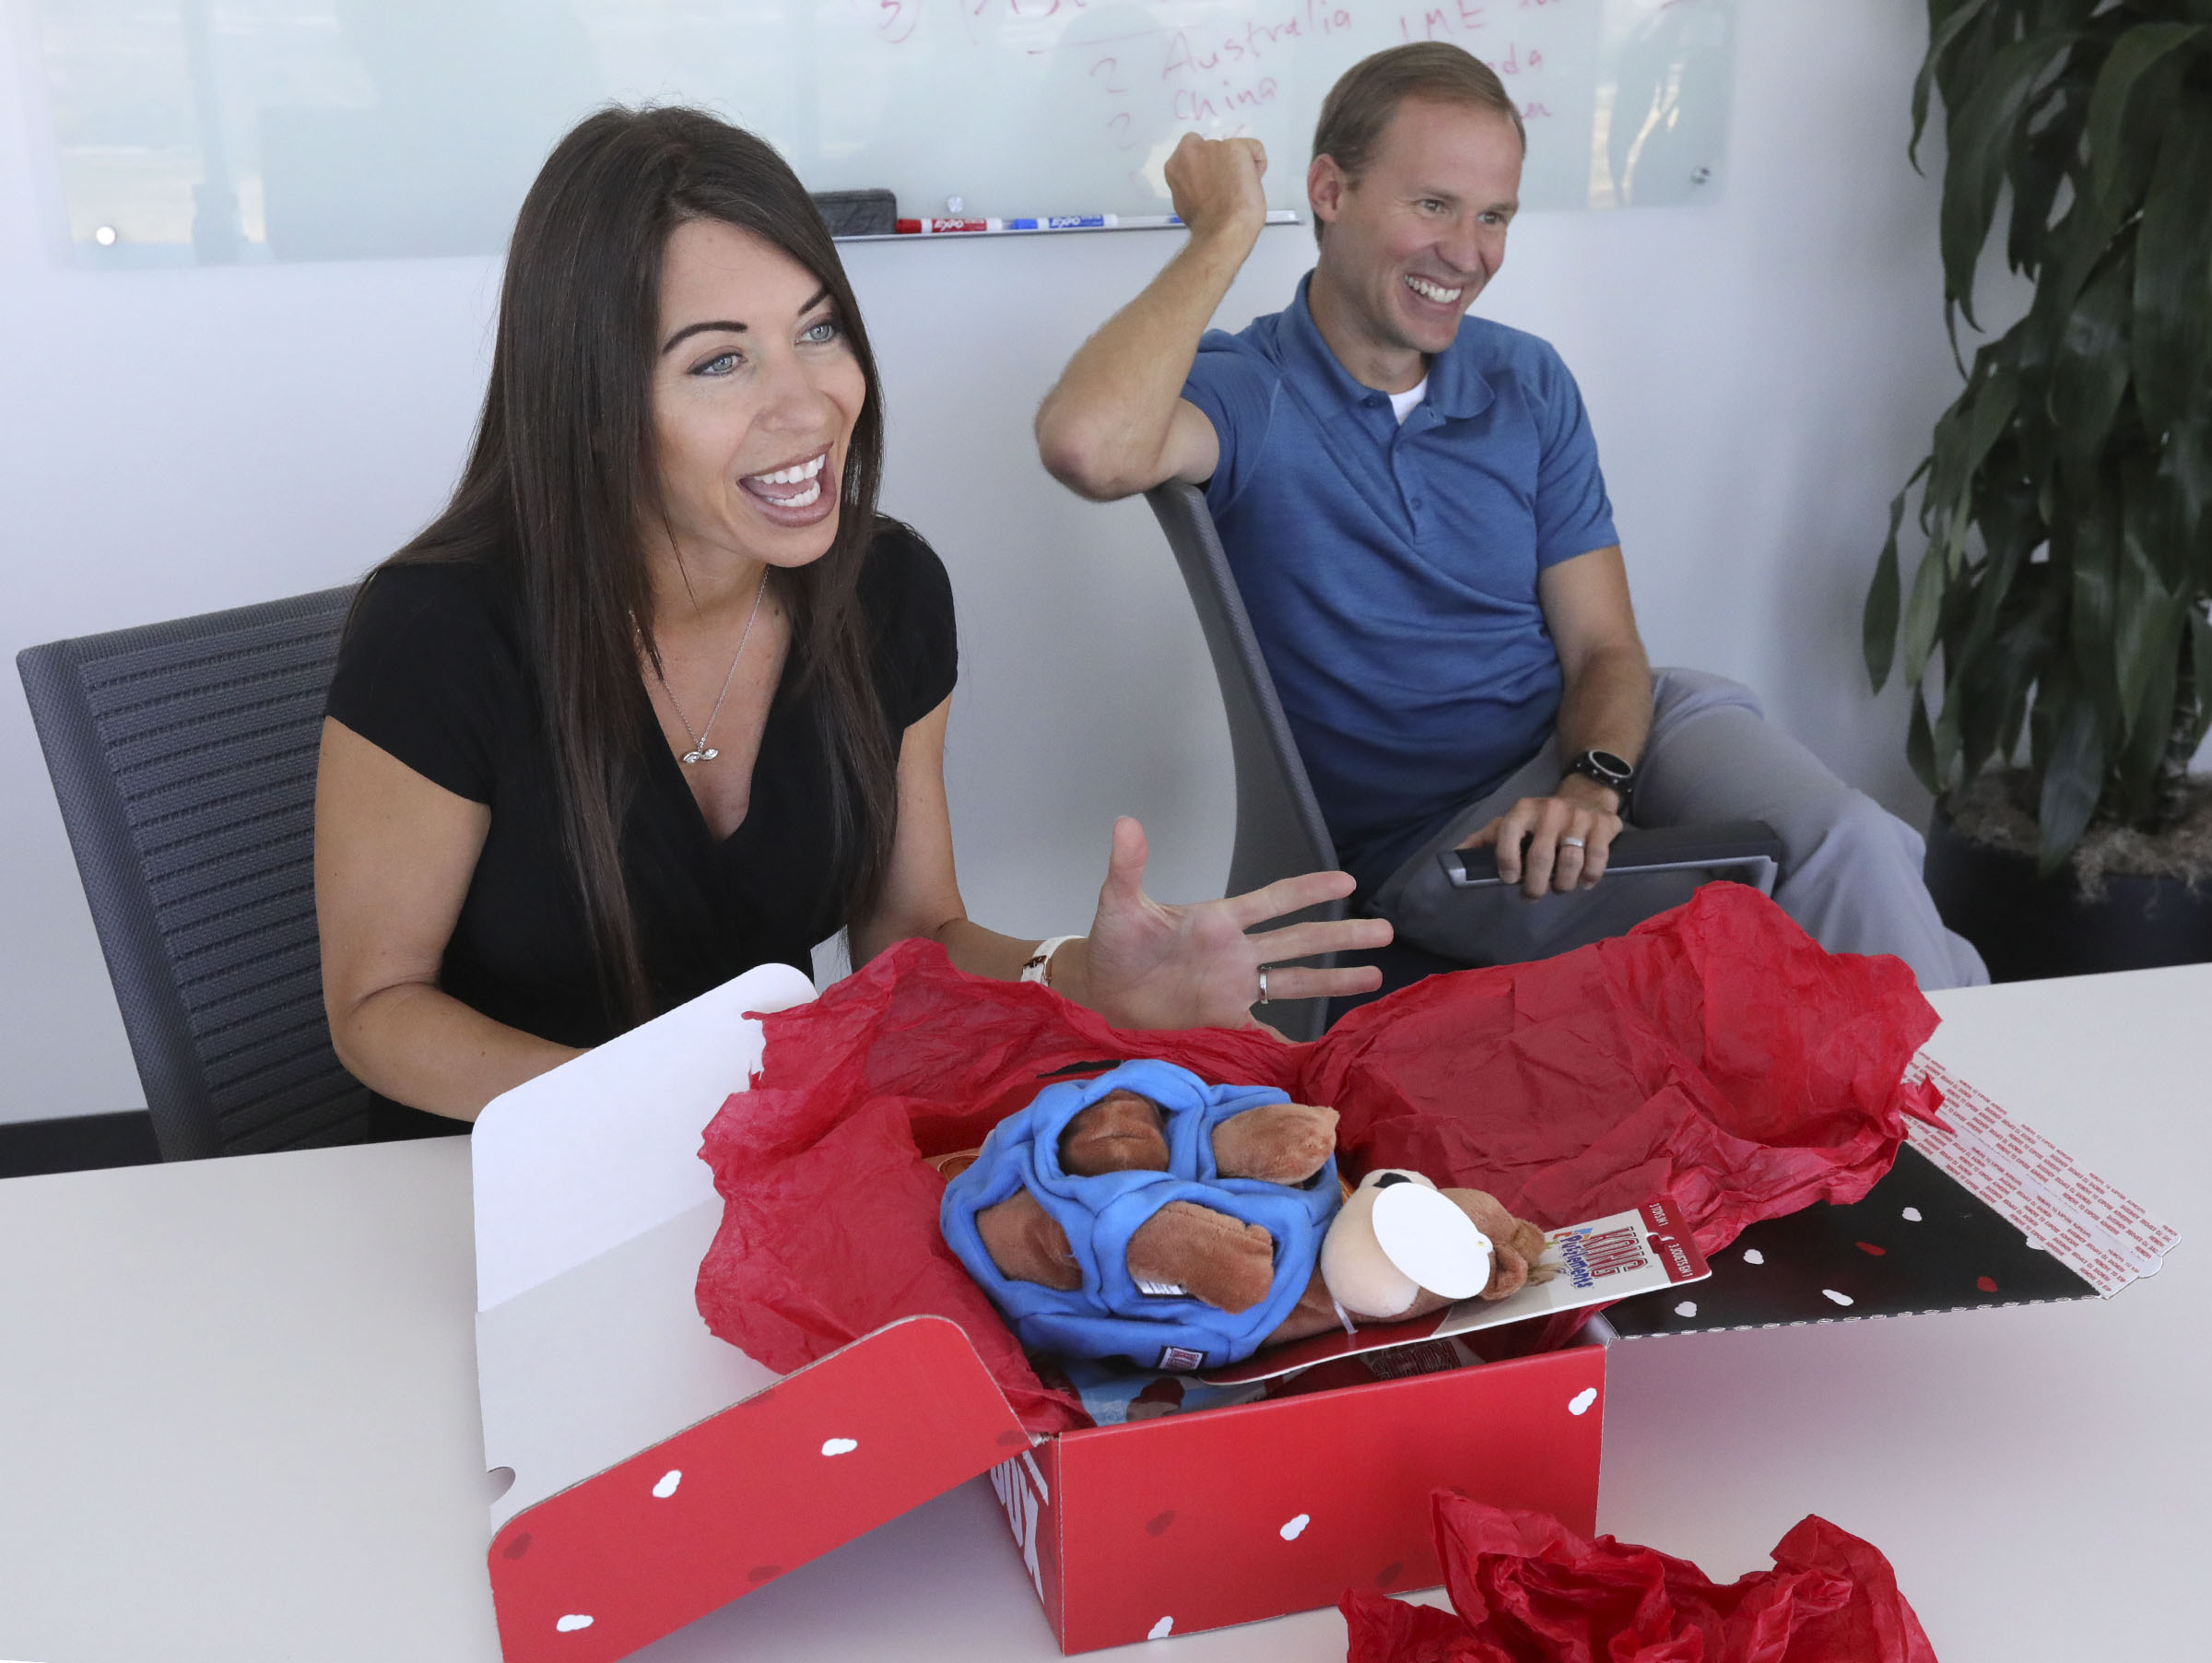 Melanie Alder and David Wright, co-founders of Pattern, talk about the Kong Box, a gift box of dog toys, at the Pattern office in Lehi on July 3, 2019.